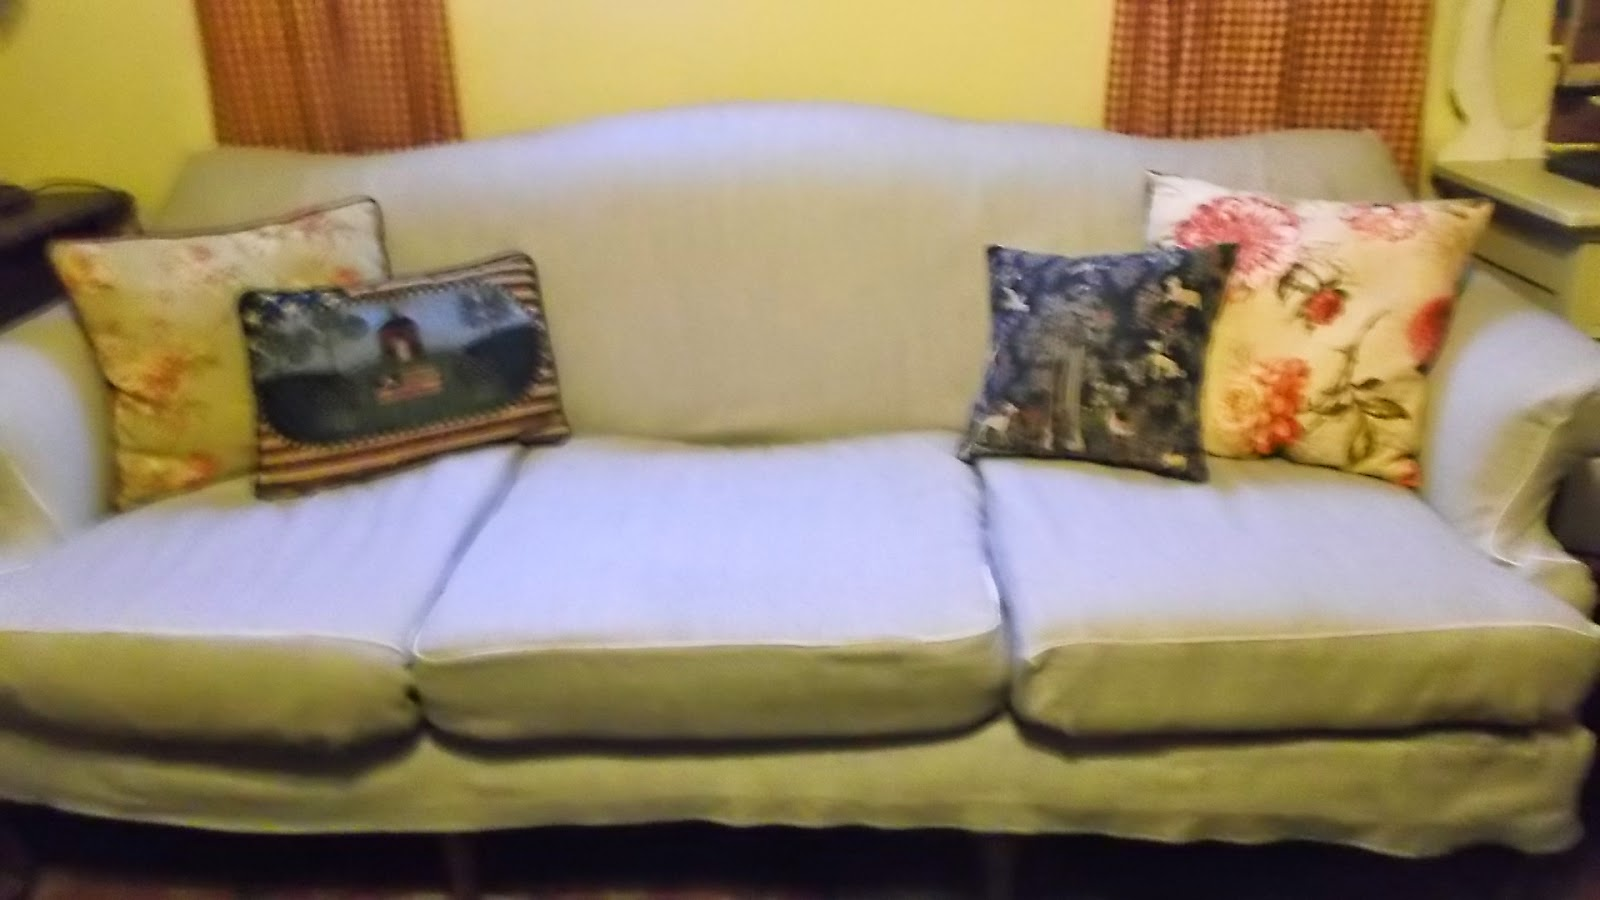 Camel Back Sofa Slipcover Part 2